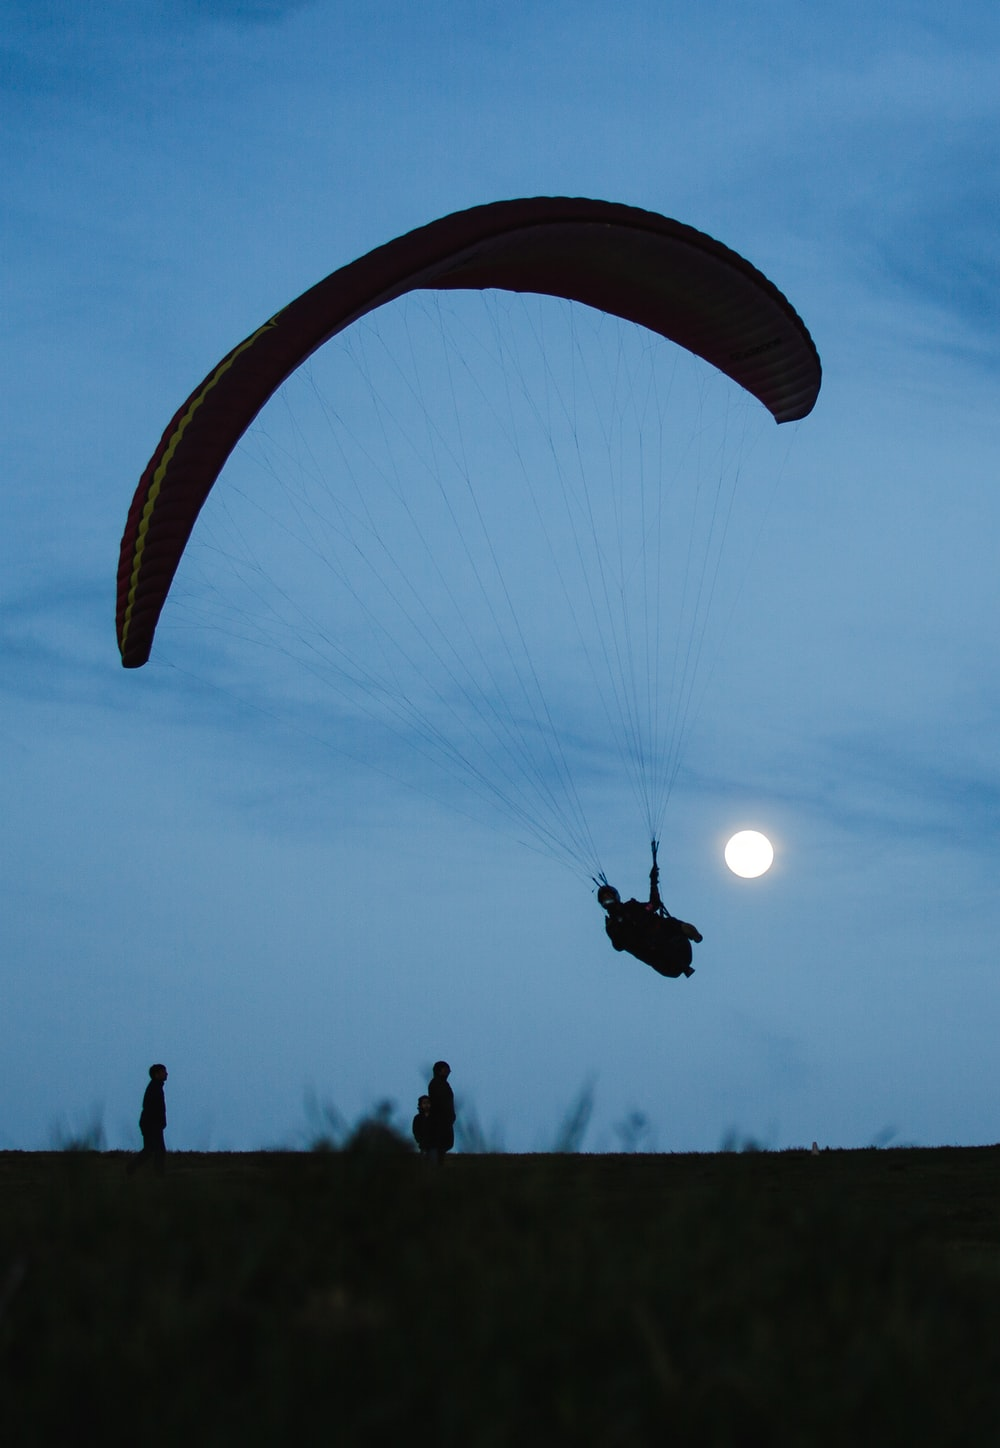 silhouette of people riding parachute during daytime